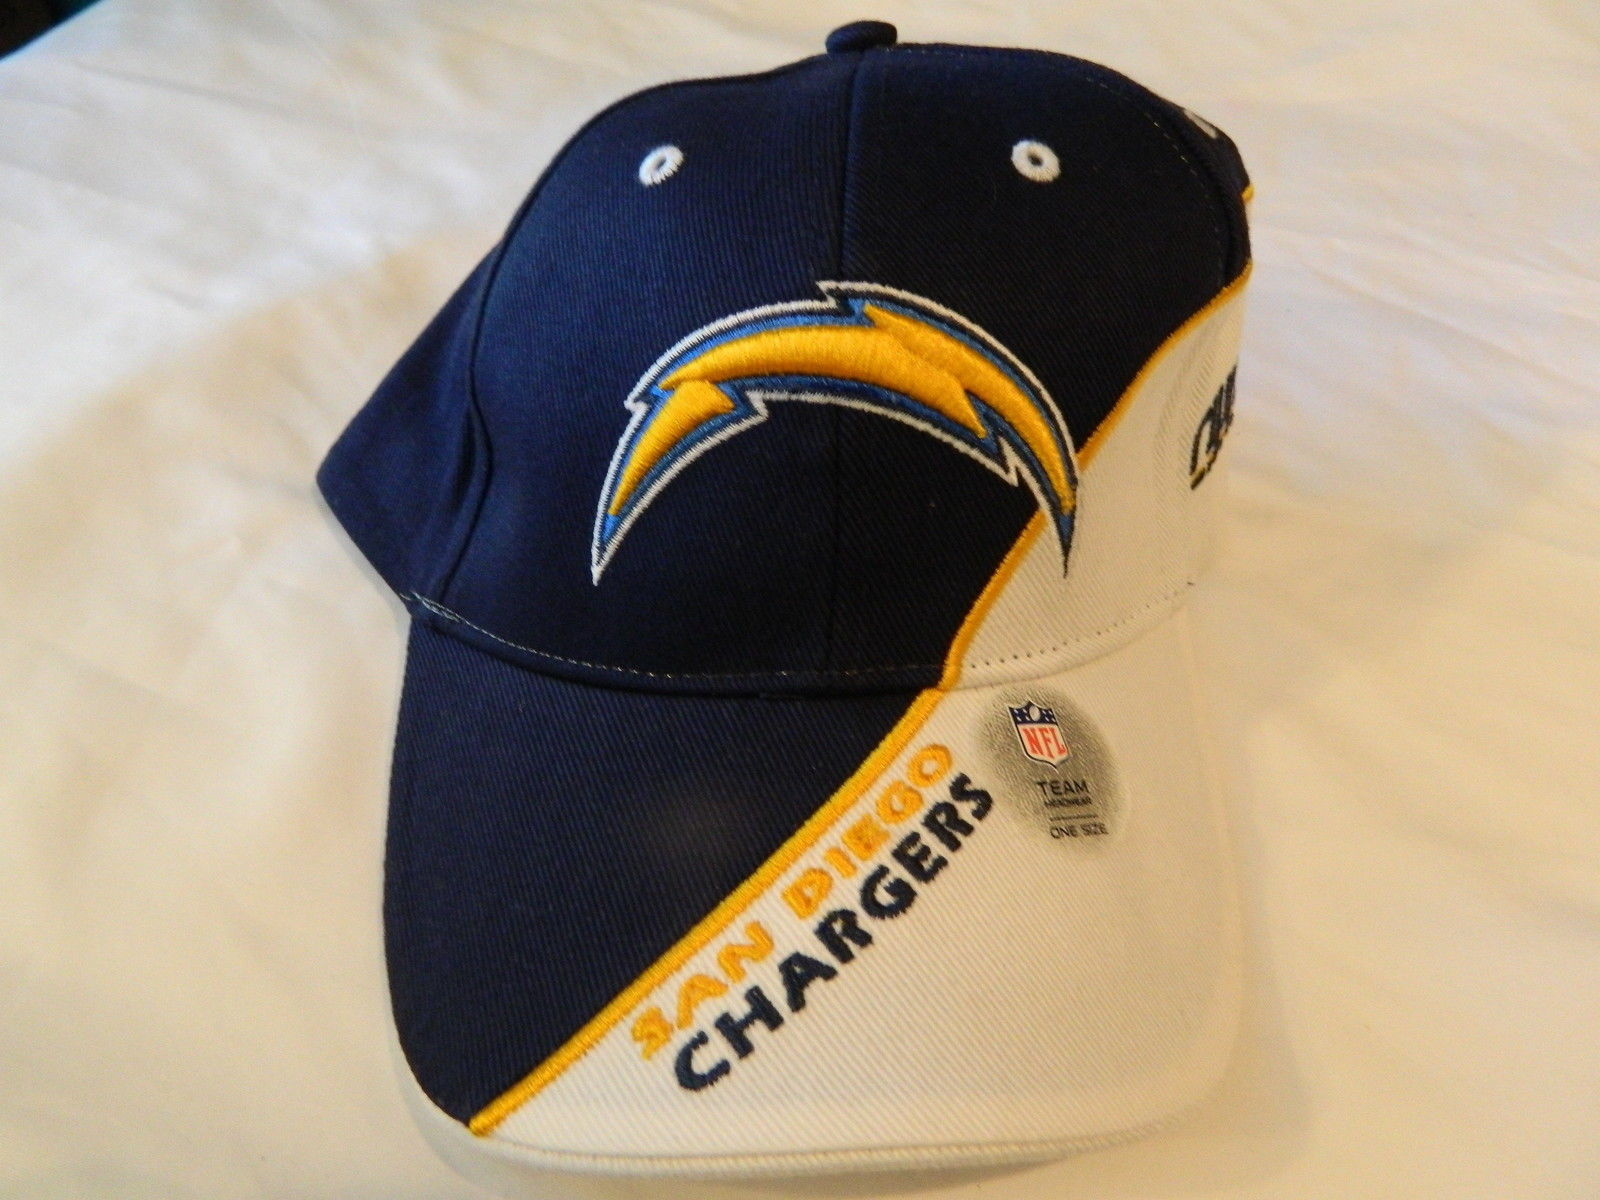 Team San Diego Chargers NFL Team Apparel Blue One Size One size fits most NWT